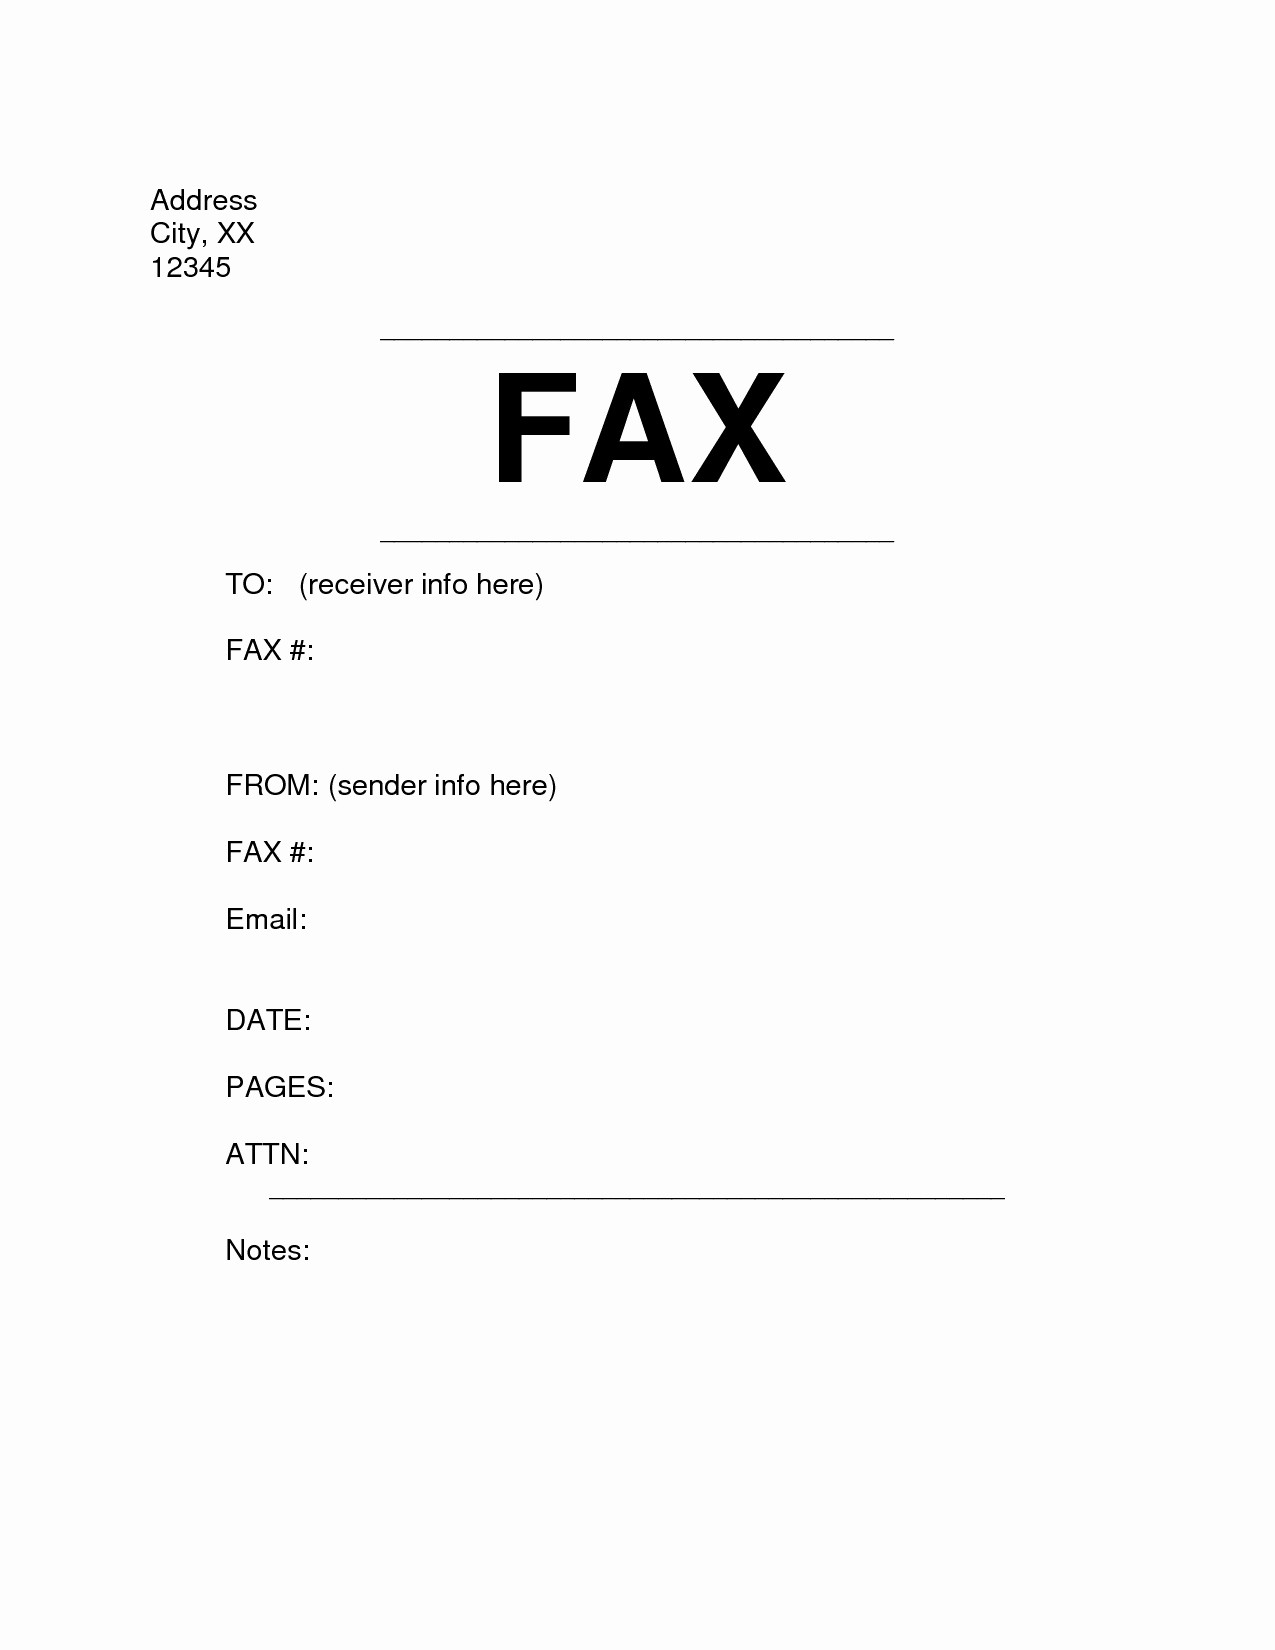 Fax Cover Sheet for Mac Luxury Pages Template Fax Cover Sheet Mac